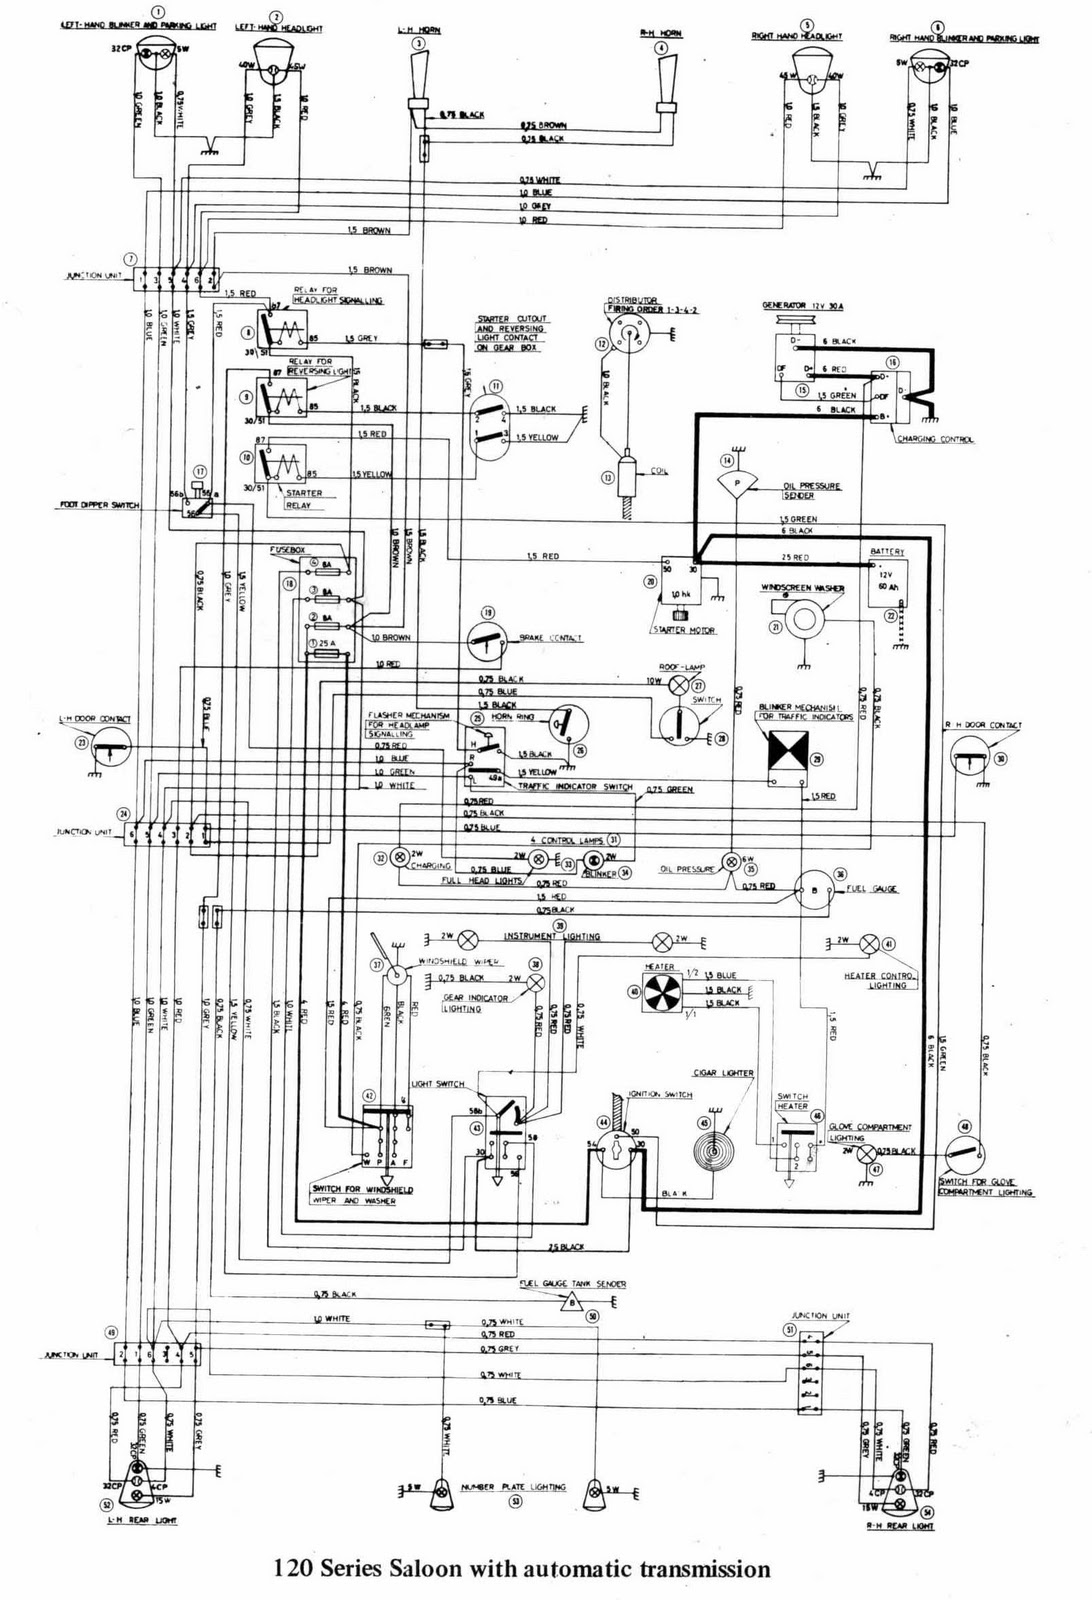 hight resolution of wiring diagram volvo 850 glt 1993 wiring diagrams 1997 volvo 850 parts volvo 850 tail light wiring